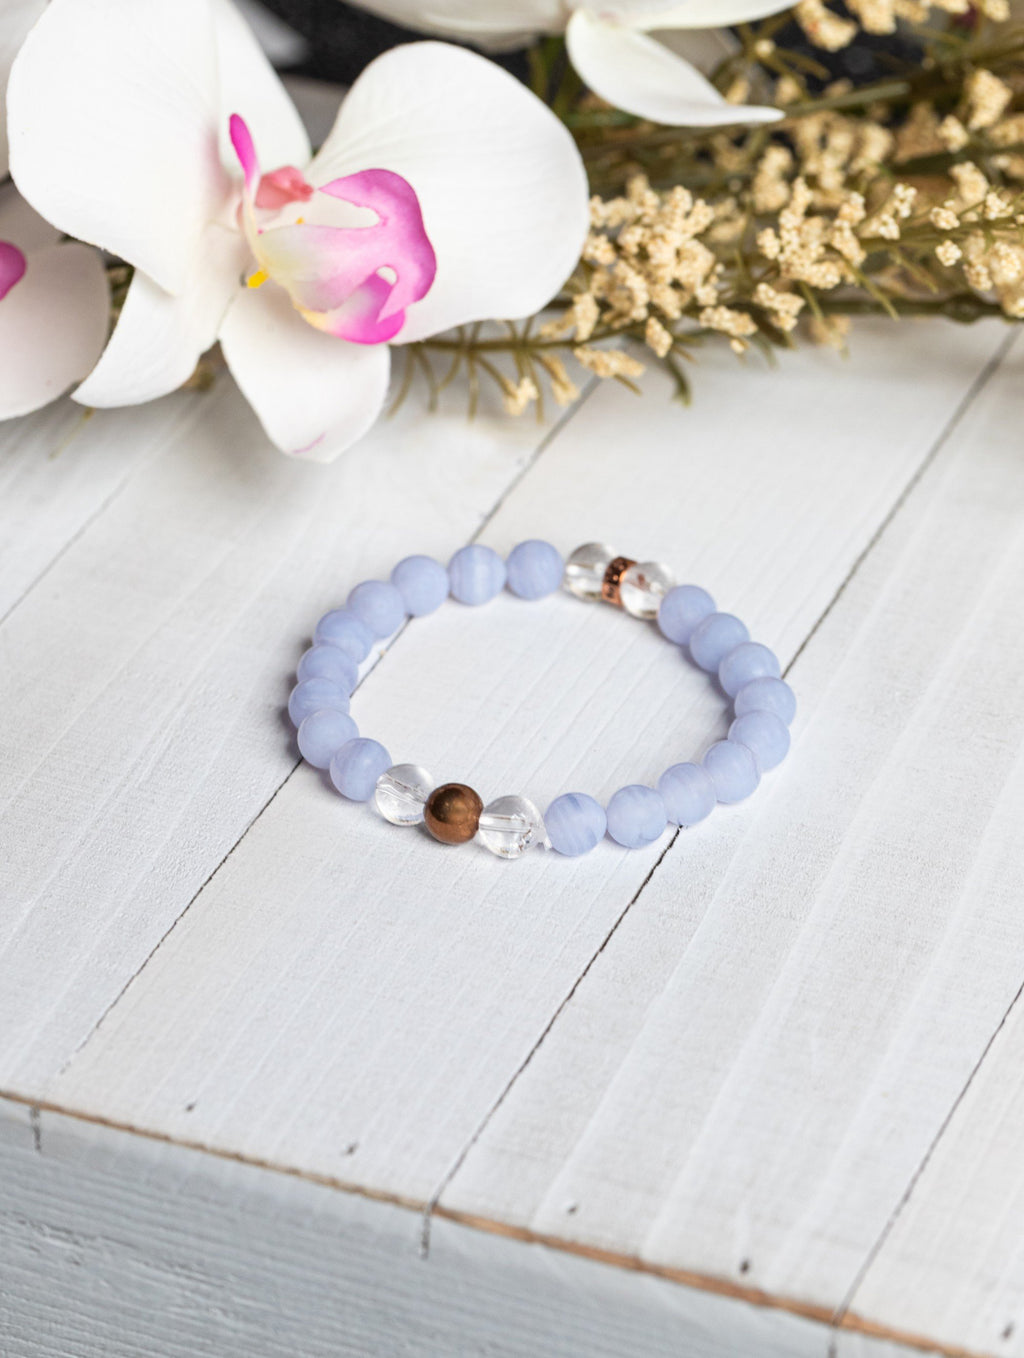 Blue Lace Agate Bracelet for Stress Release - Energy Muse